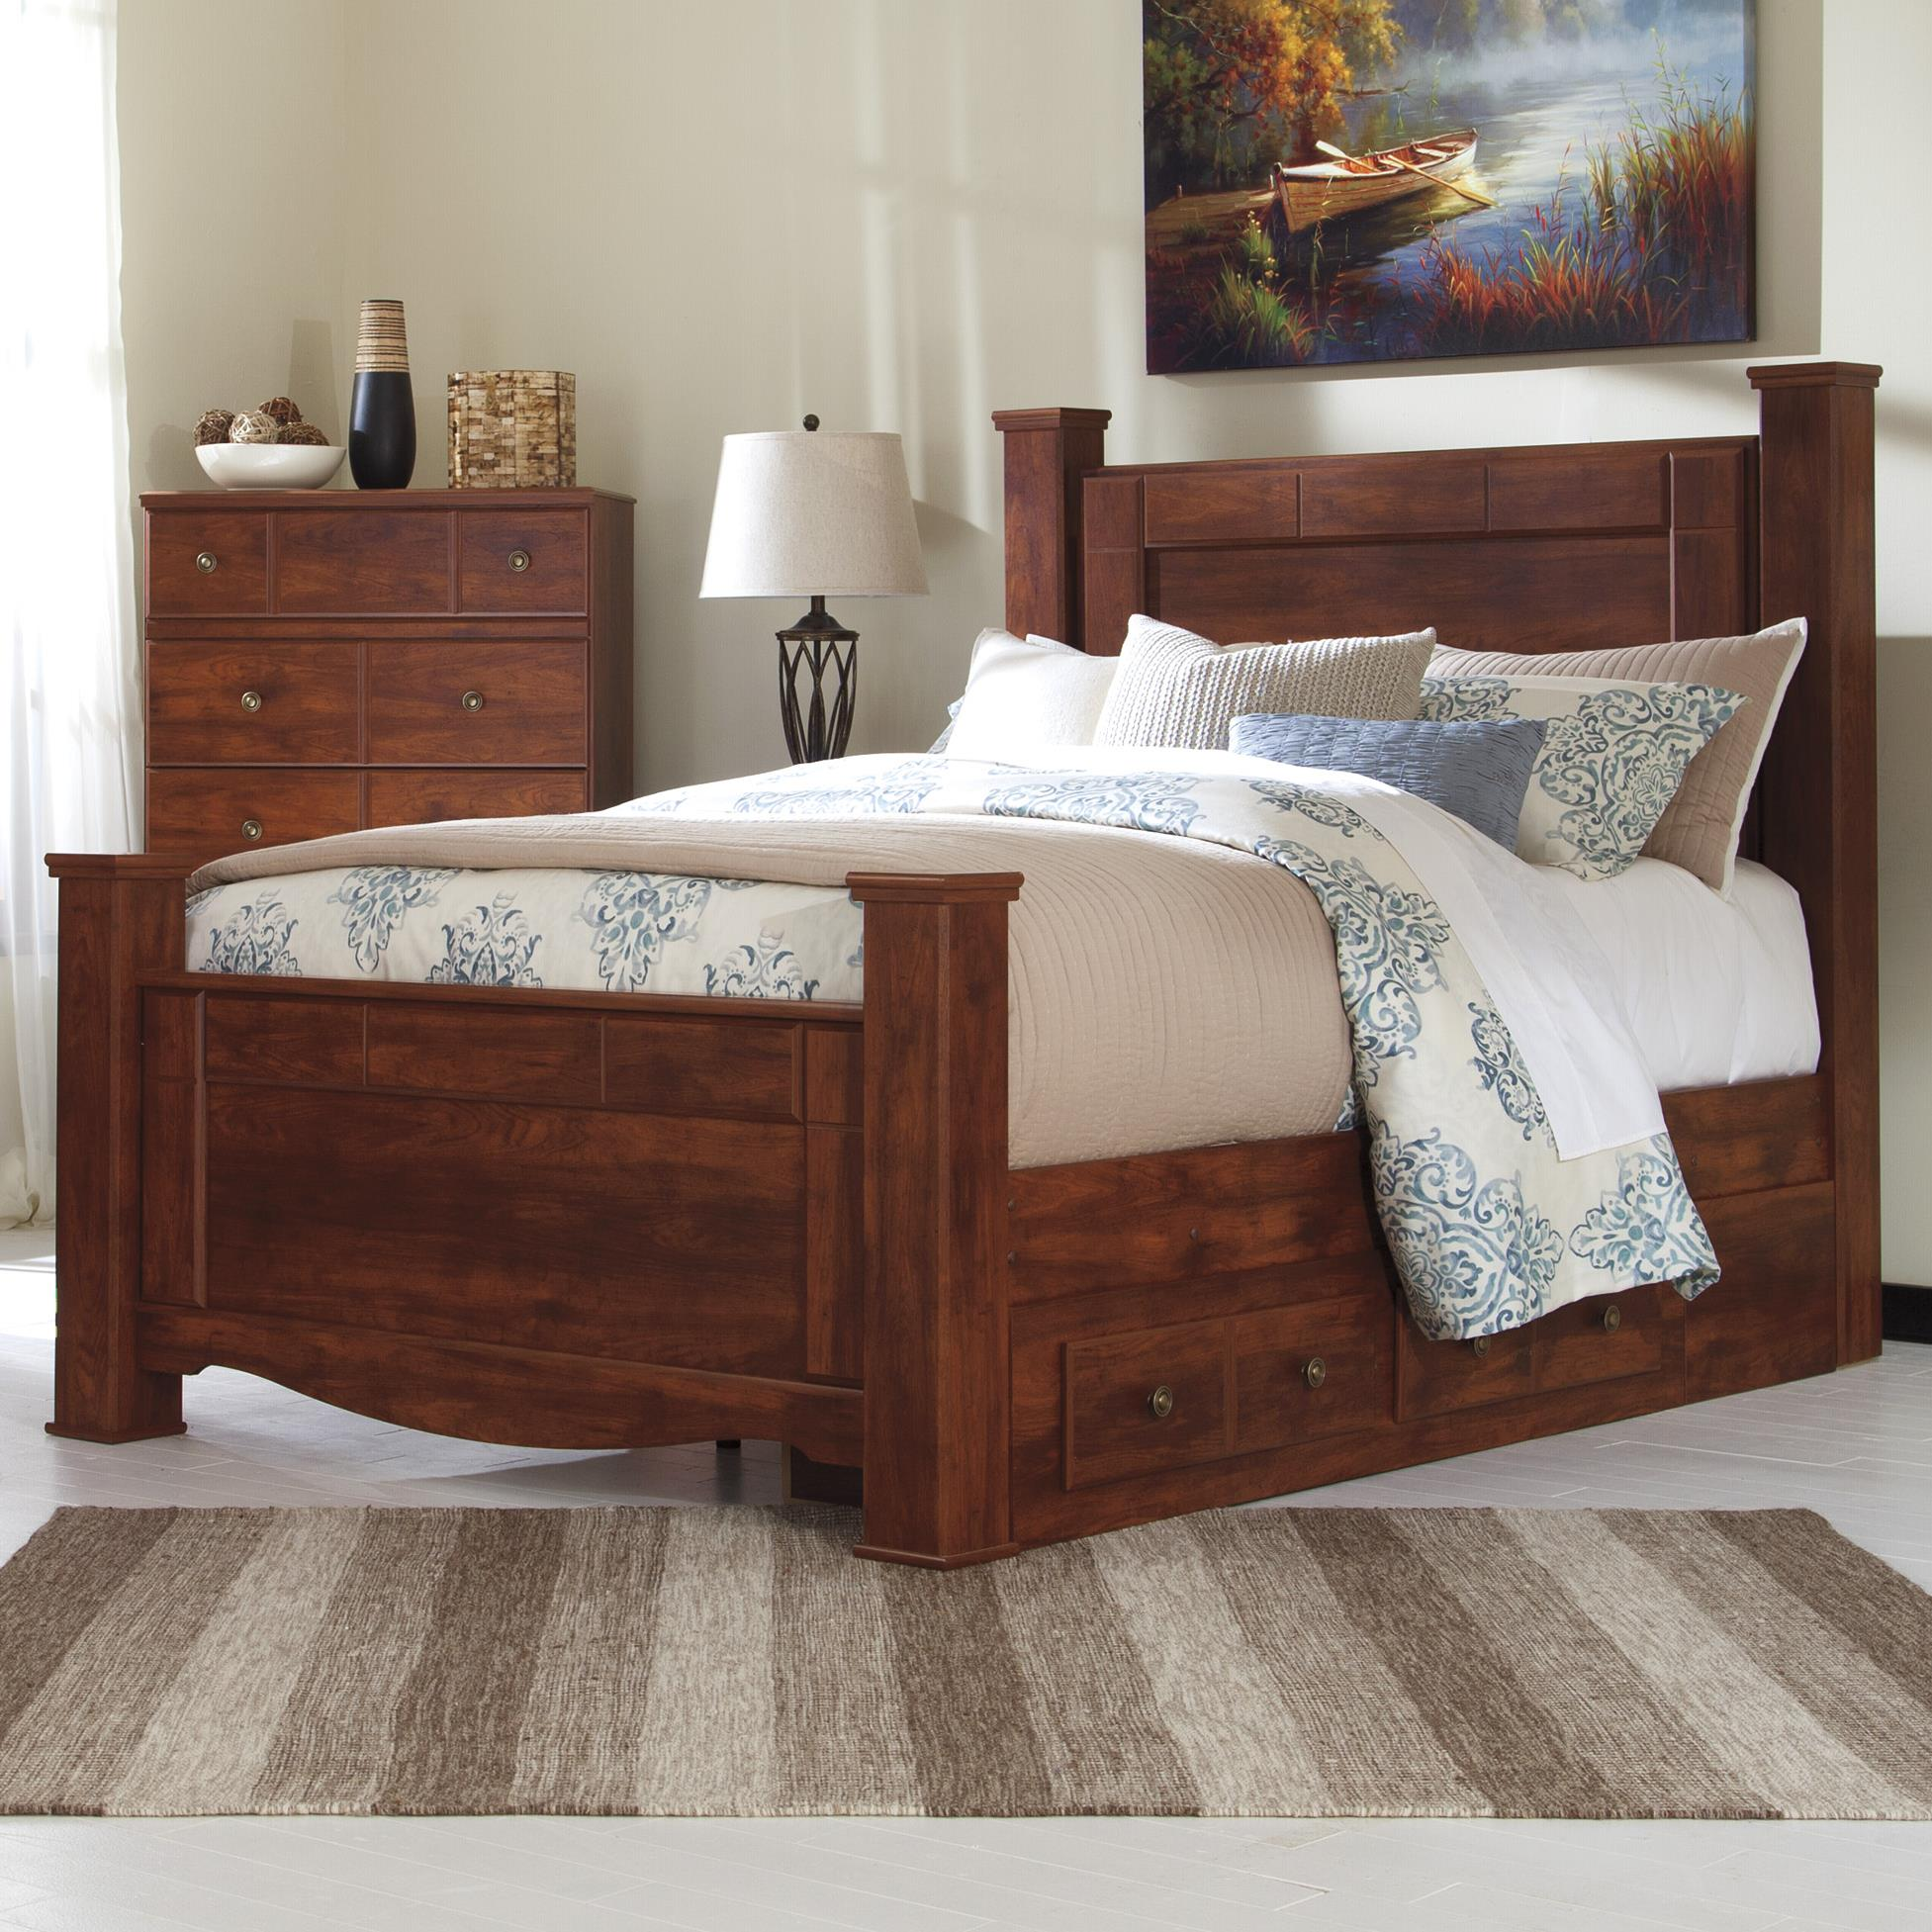 Signature Design by Ashley Brittberg Queen Poster Bed with Underbed Storage - Item Number: B265-67+64+61+50+98